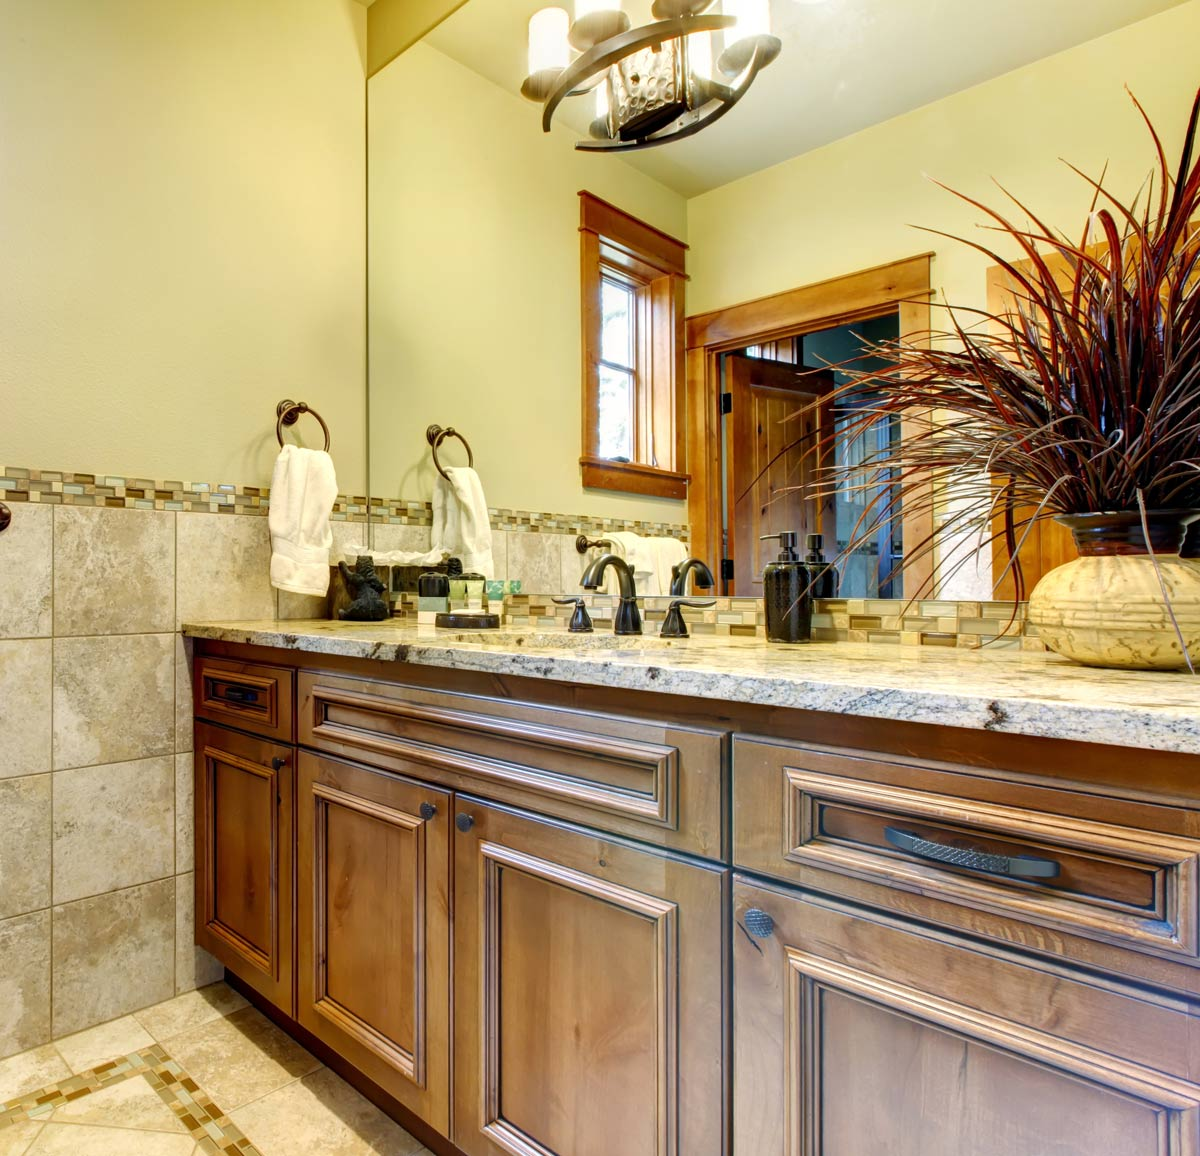 Take a look at what's possible - Cabinet Refacing Of Seattle Custom Cabinets